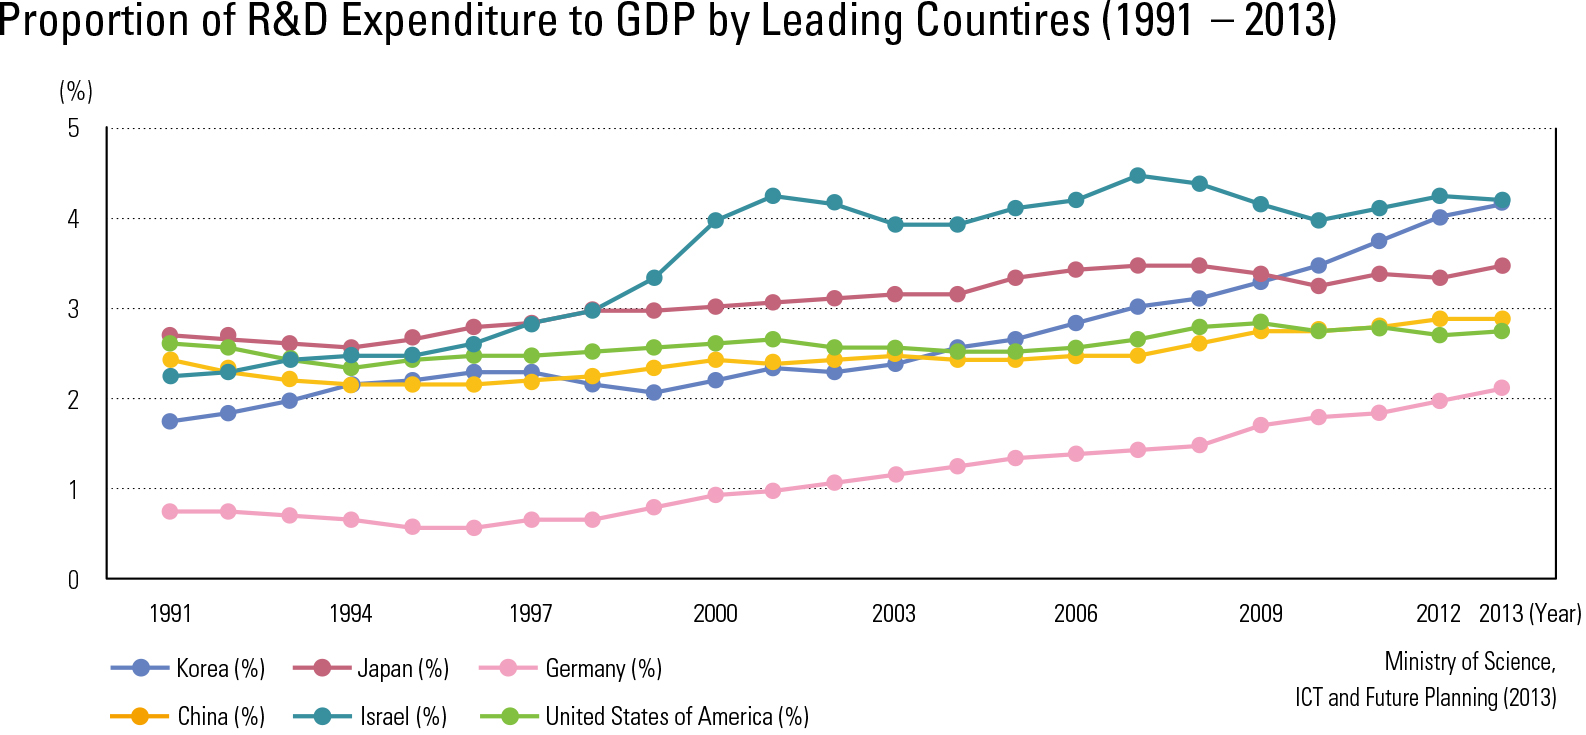 "Proportion of R&D Expenditure to GDP by Leading Countires (1991 – 2013)<p class=""oz_zoom"" zimg=""http://imagedata.cafe24.com/us_3/us3_152-5_2.jpg""><span style=""font-family:Nanum Myeongjo;""><span style=""font-size:18px;""><span class=""label label-danger"">UPDATE DATA</span></span></p>"